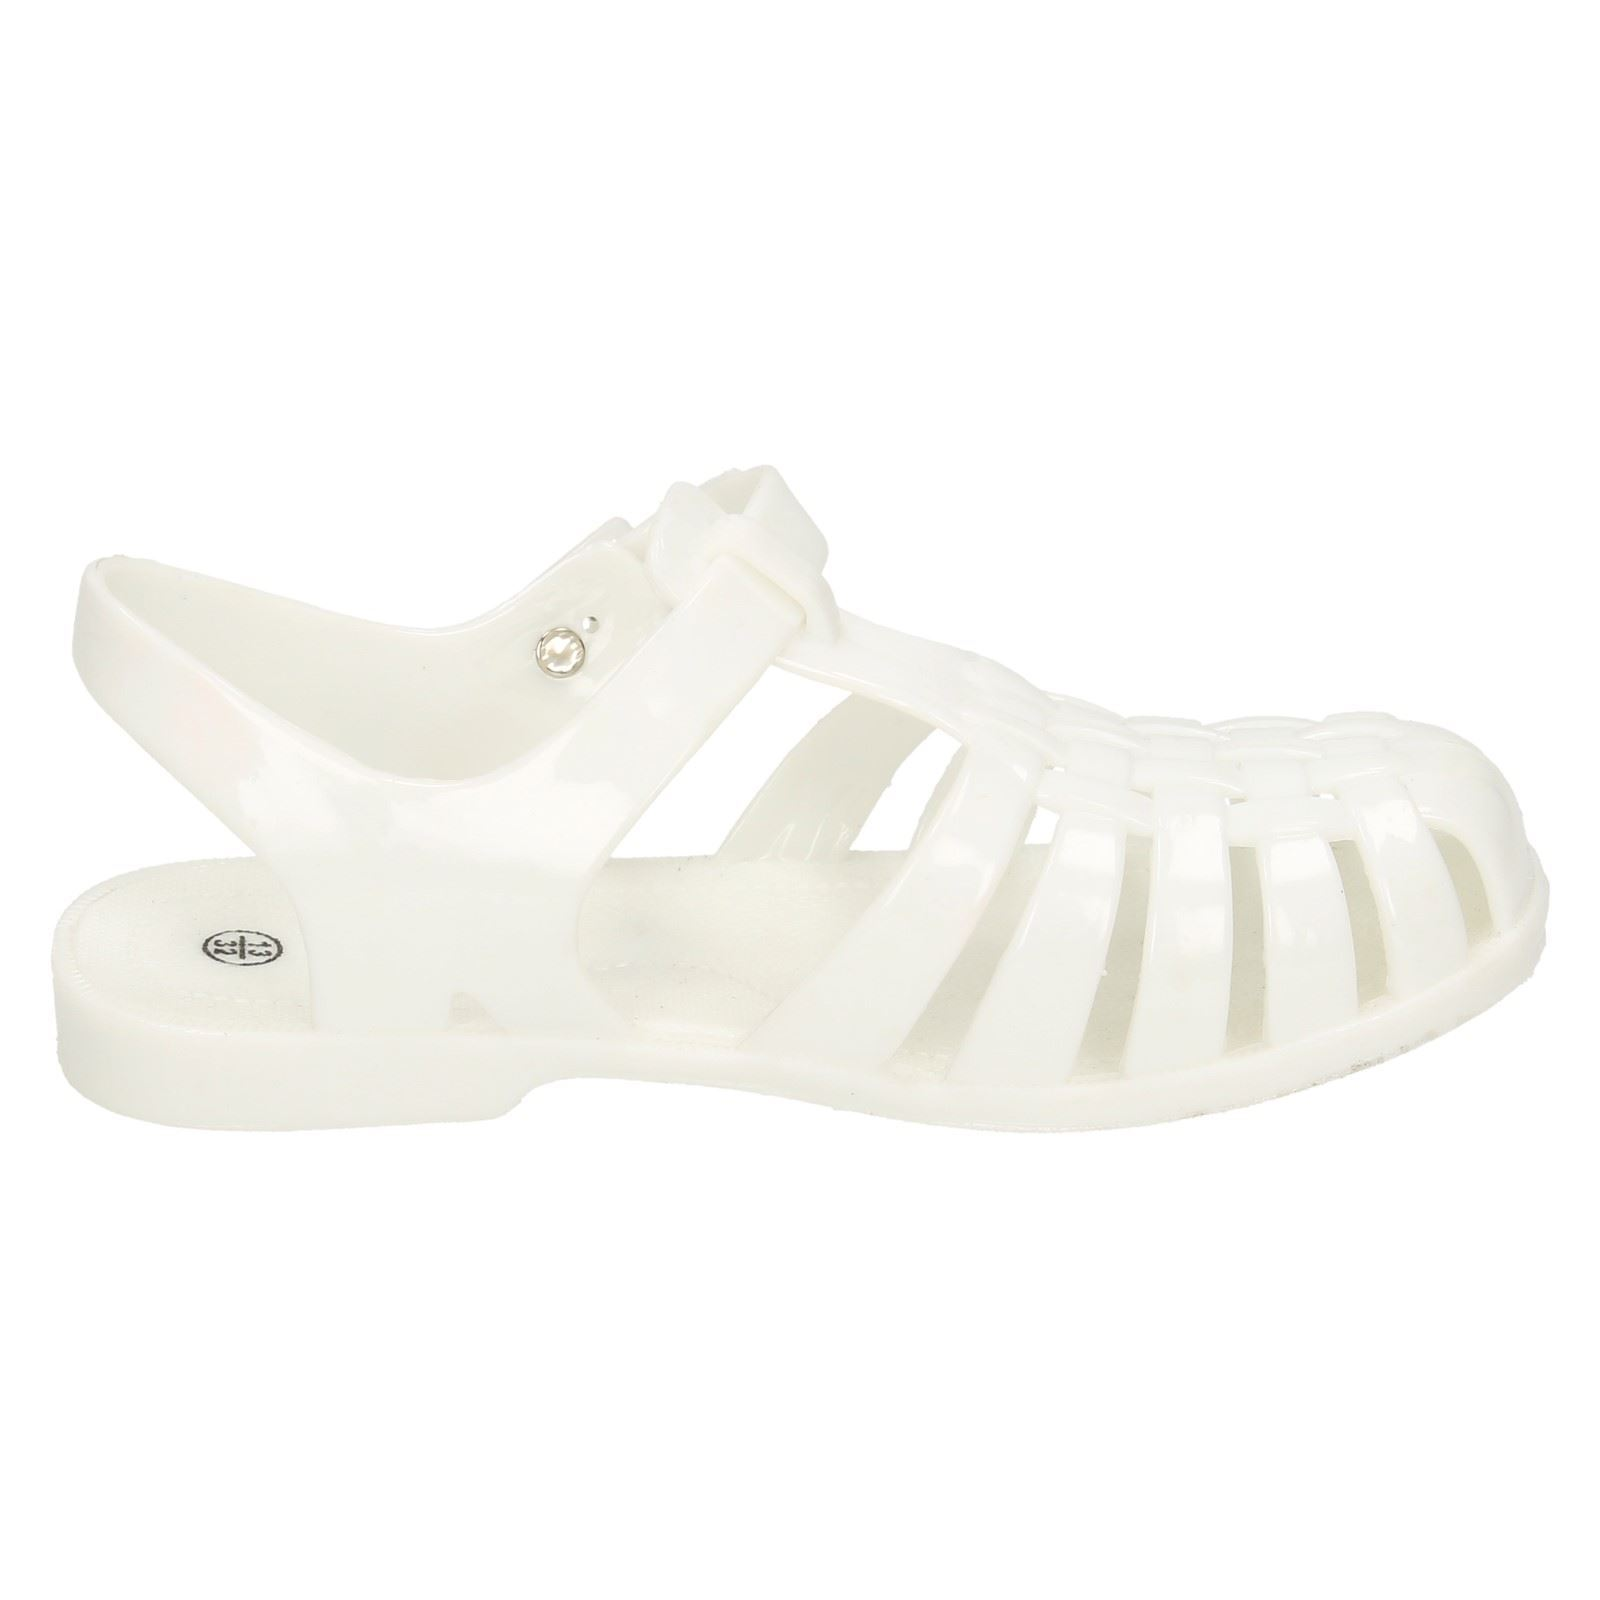 Girls Spot On Jelly Sandals H2309 - D